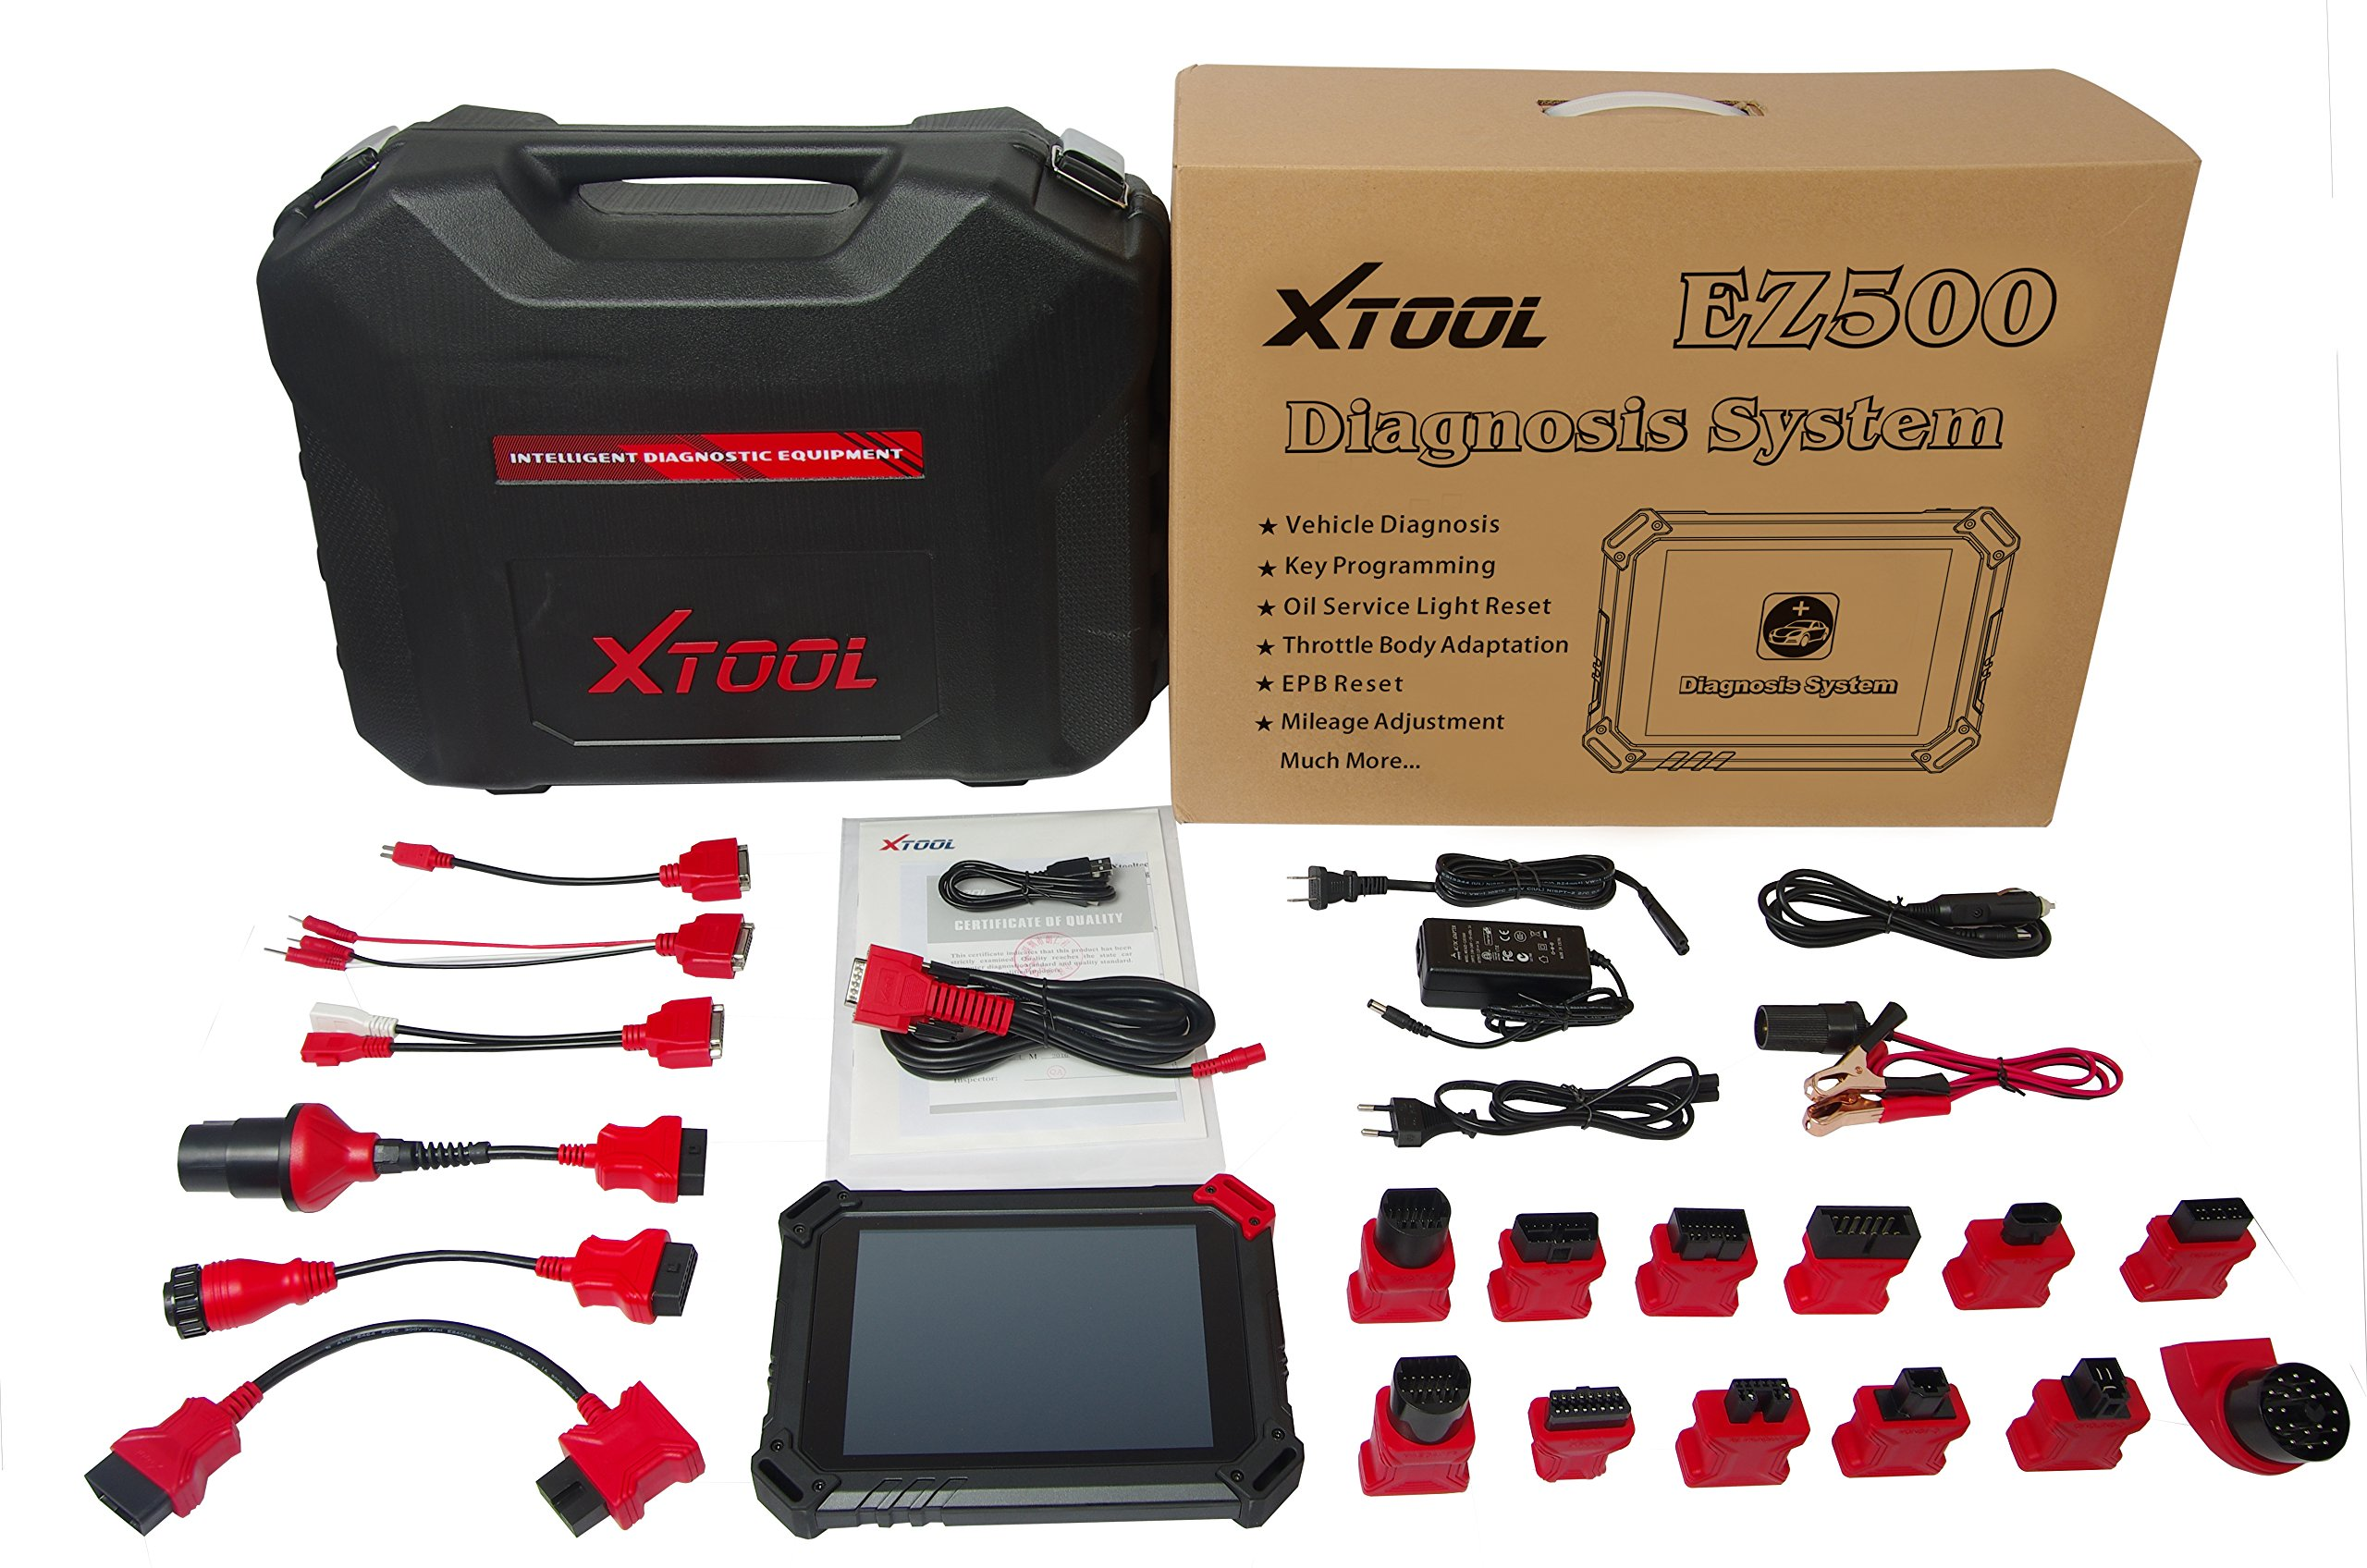 XTOOL100% Original XTOOL ez500 Diagnosis System with WIFI Online Update the Same Function with Xtool PS80 and ps90